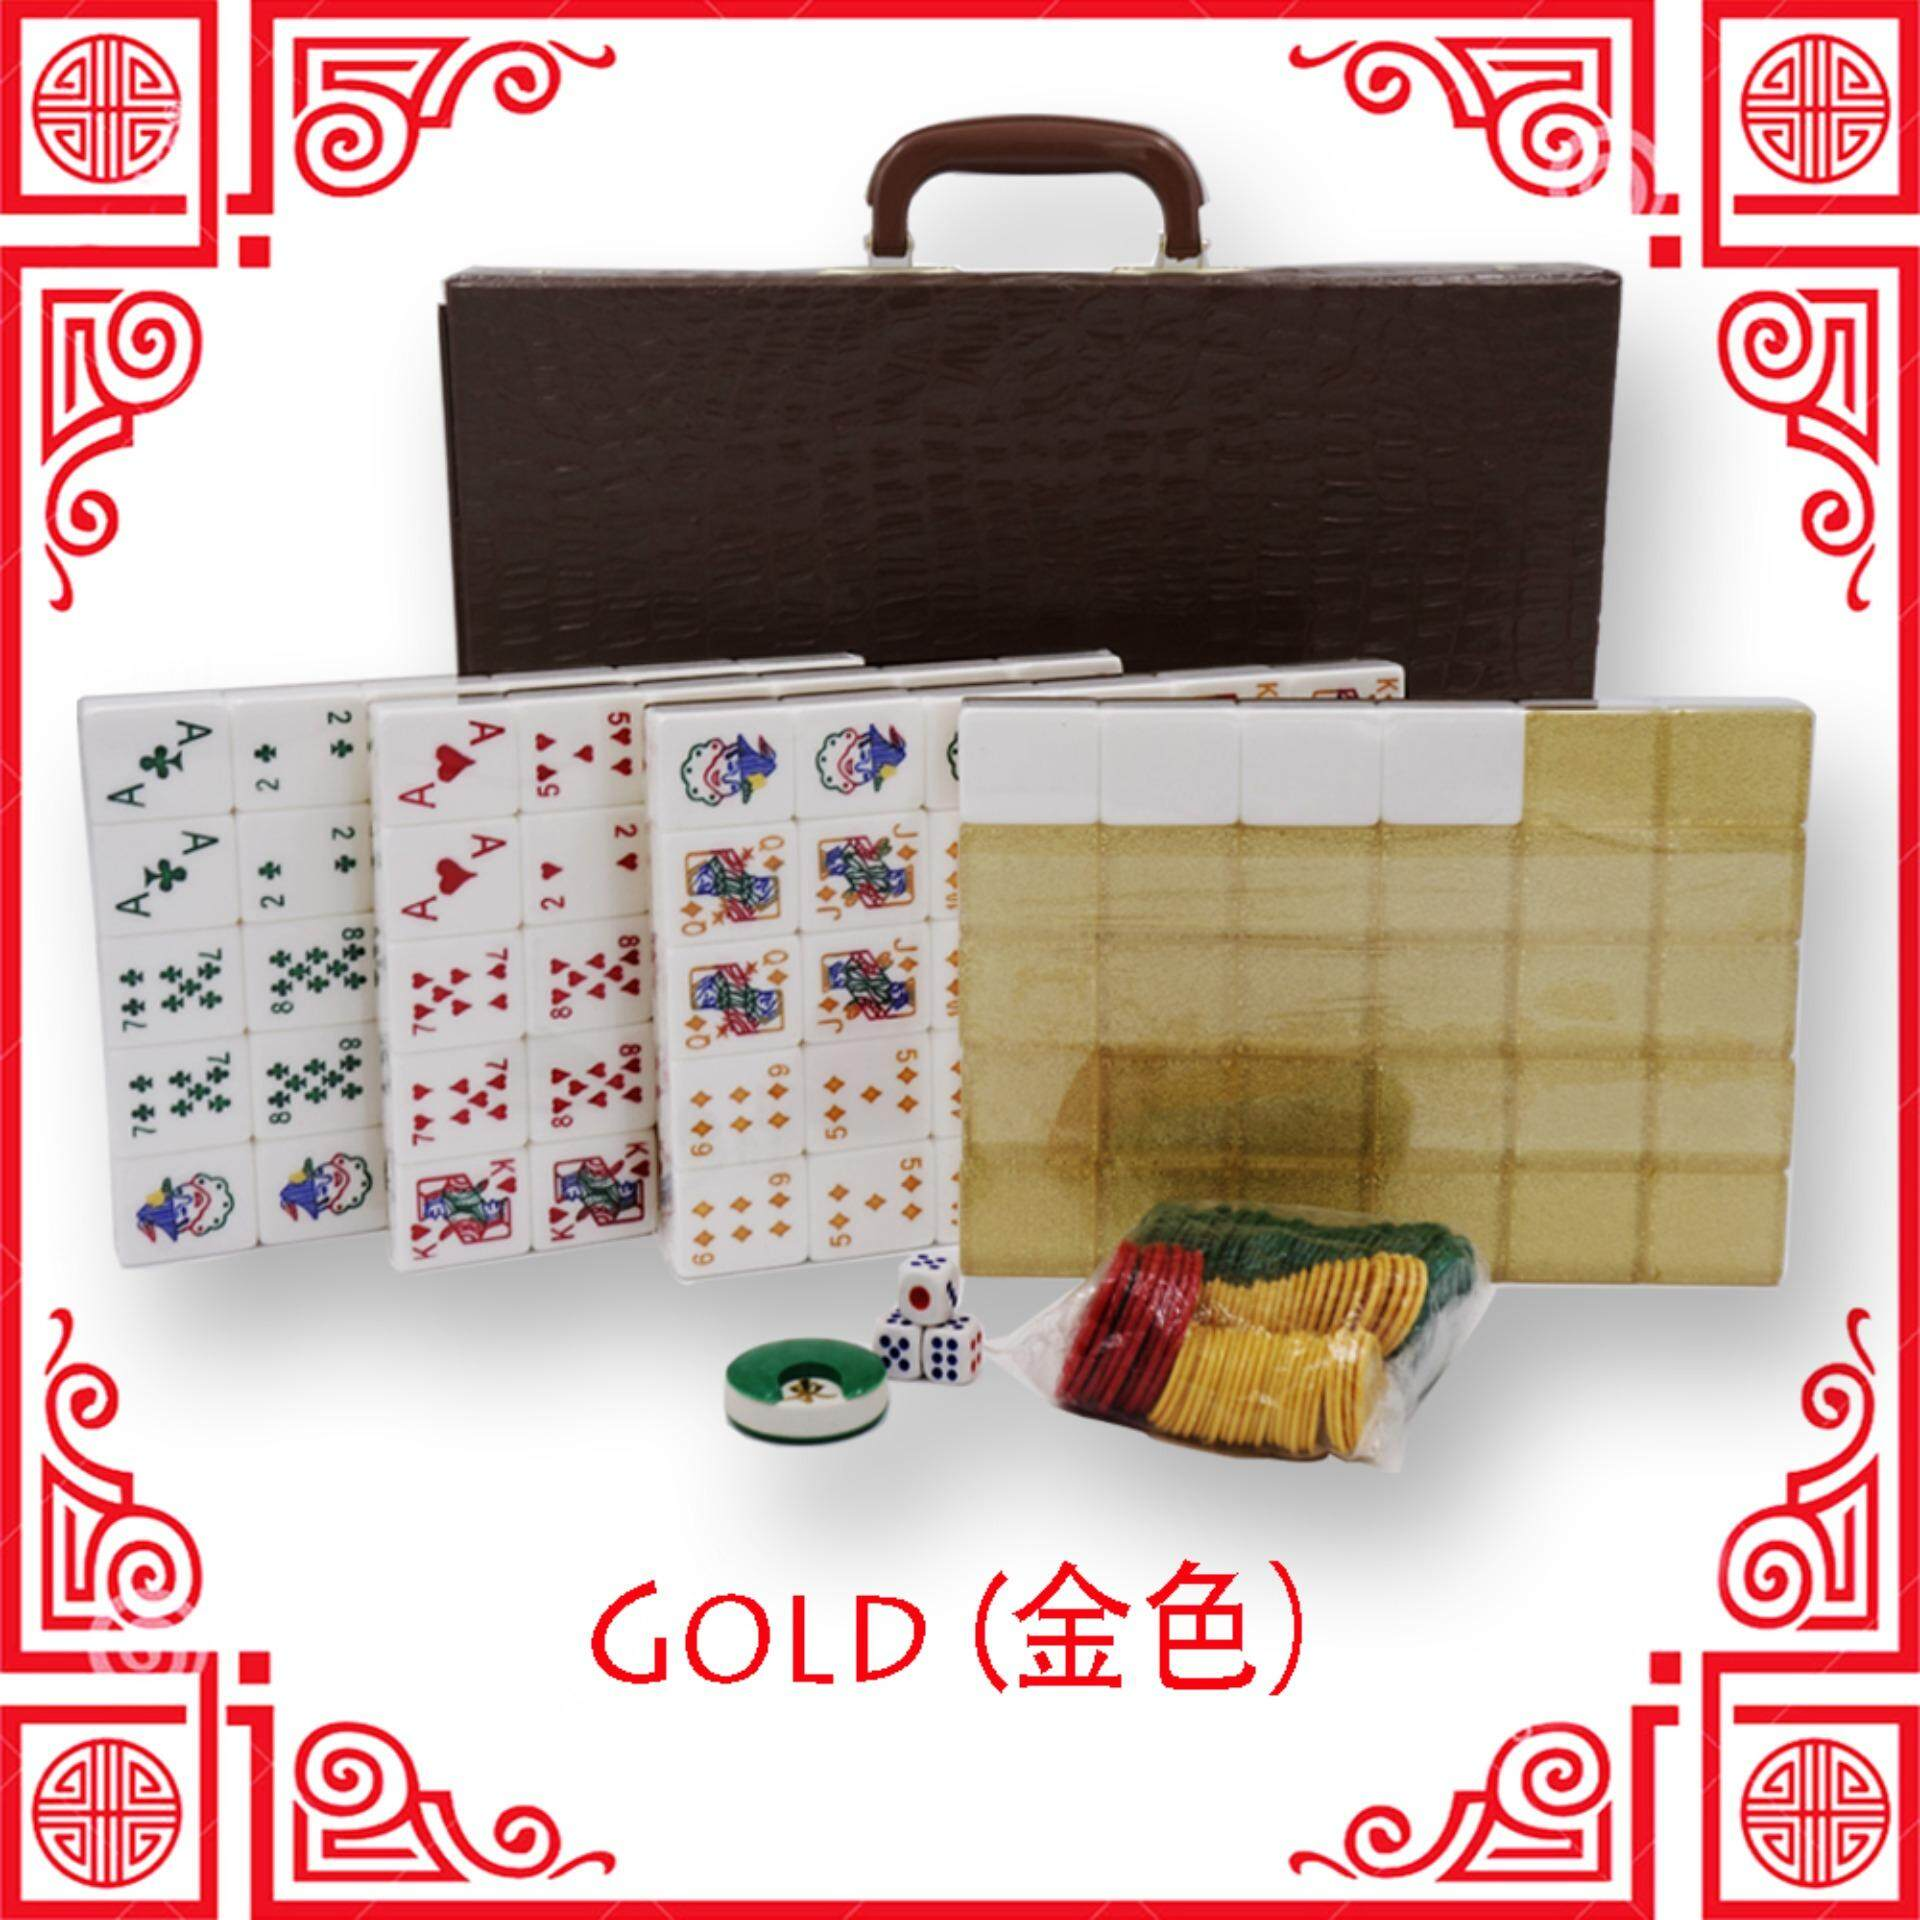 [Ready Stock] Rummy Mahjong Set Gold Edition [Fast Delivery]